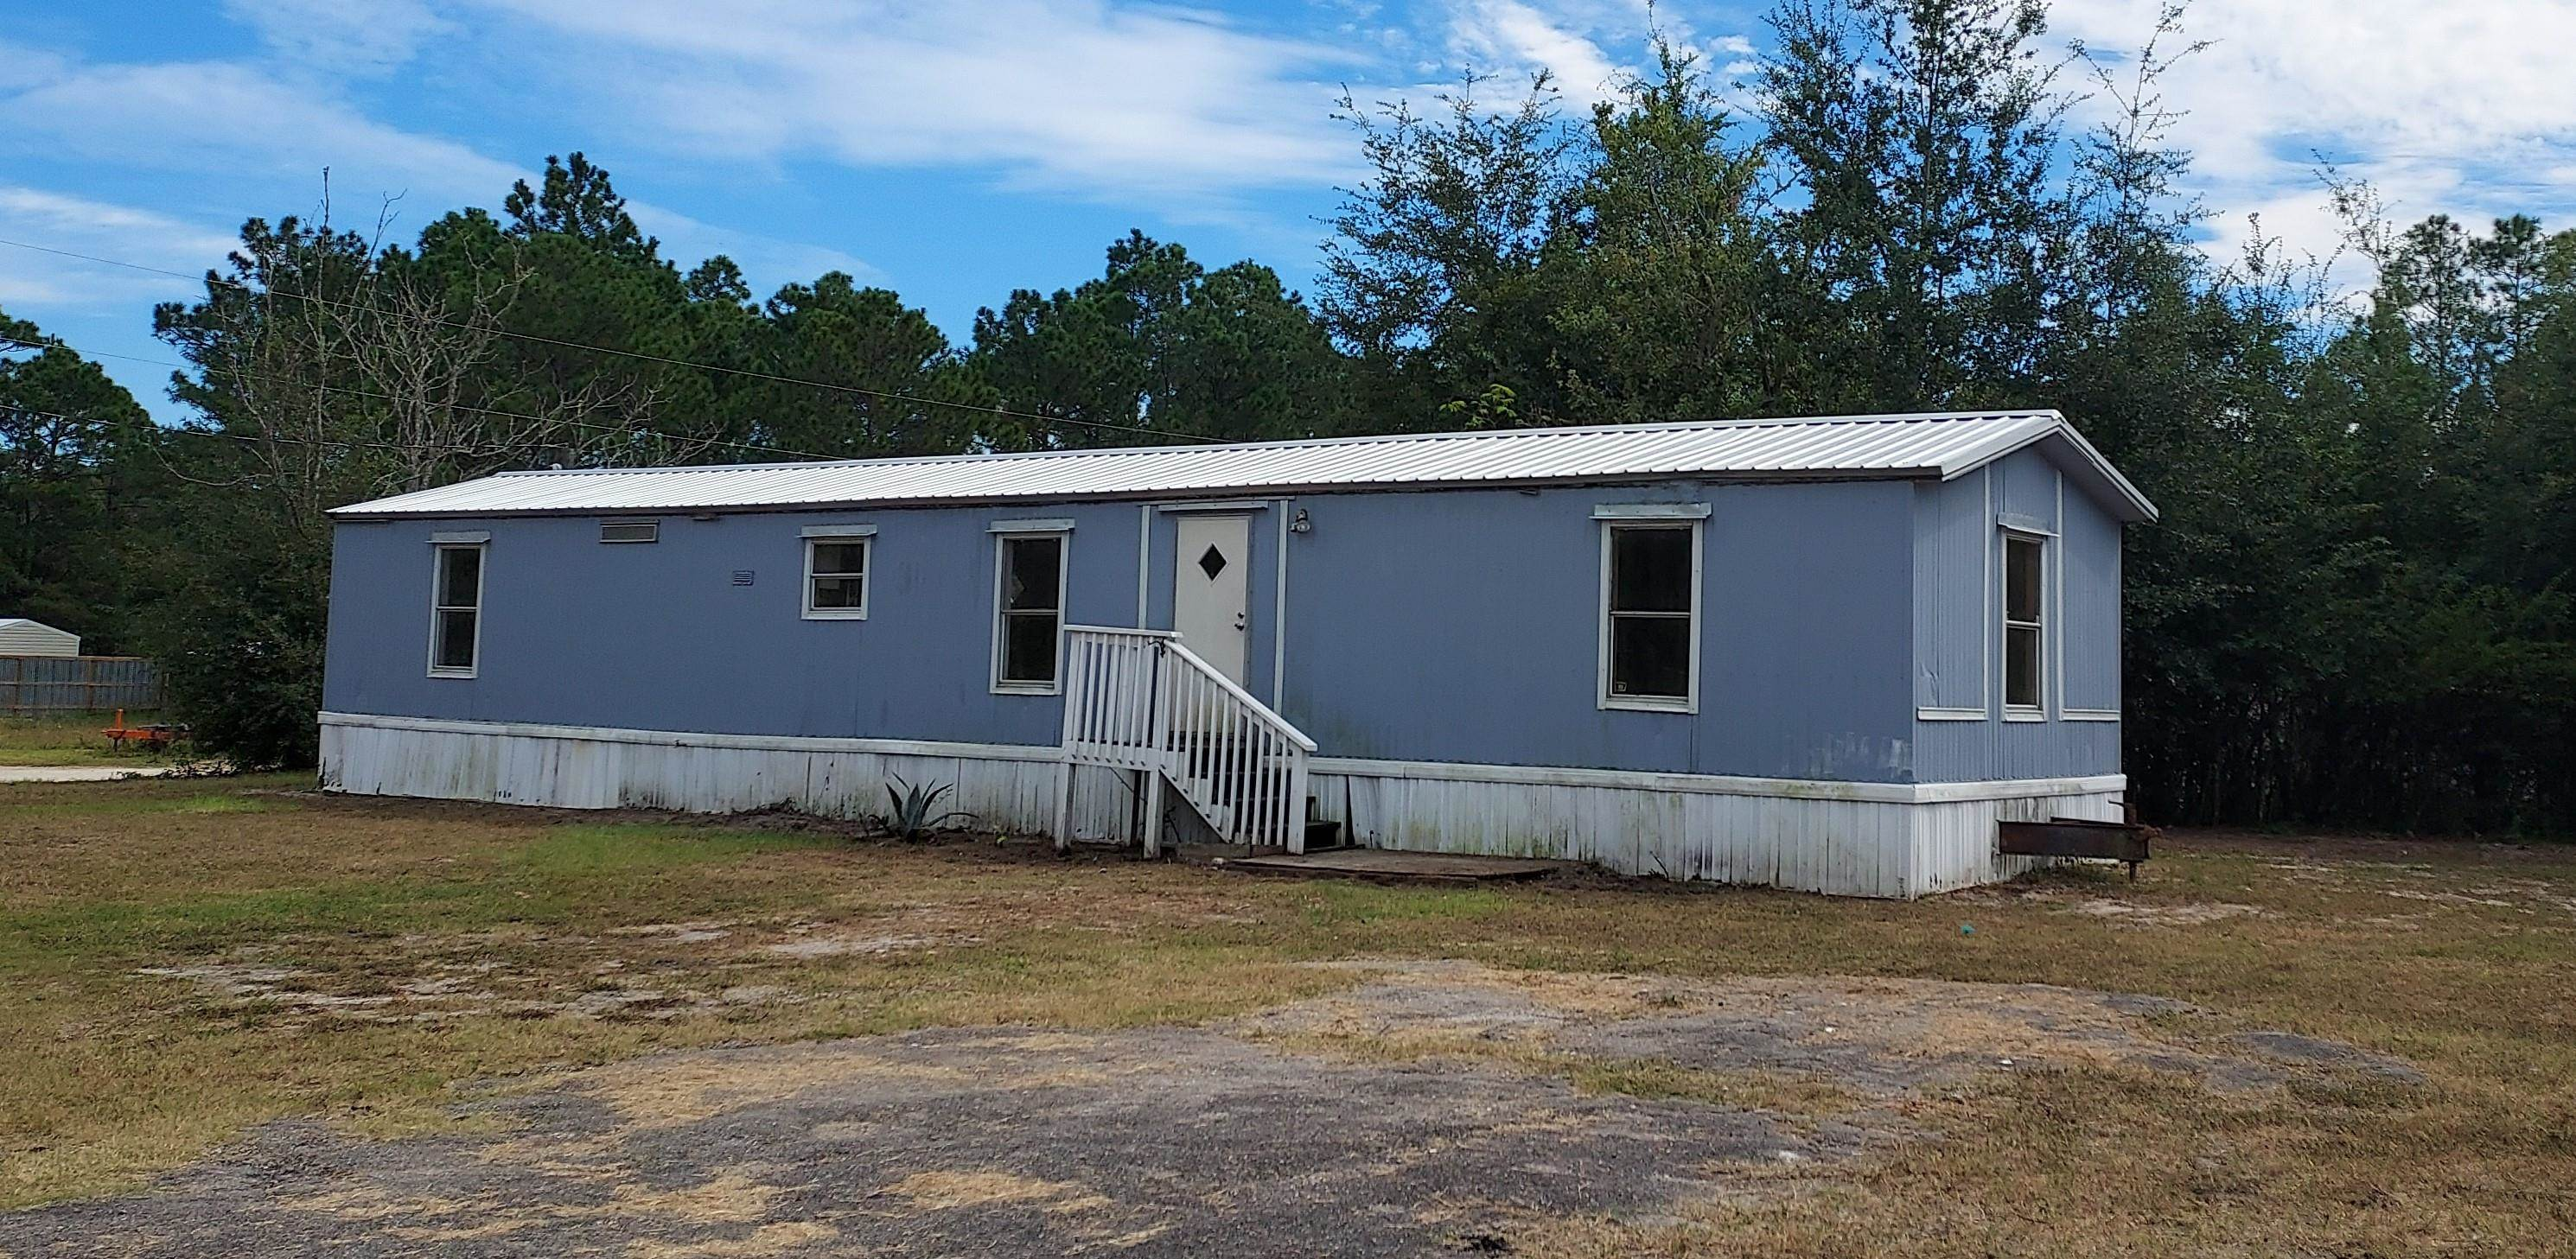 1991 14x70 Single -wide mobile home. Needs work, but has no roof leaks. Some new plywood sub-floors and vinyl flooring in 2017. New metal roof 2017. Totally renovated in 2017, but was not maintained by tenants. 2 master suites. HVAC worked when property was vacated in September 2021. Needs plumbing work in shower in west side bath. Utilities are not on. Dishwasher and Microwave Hood only, unknown if these are operational. Nice flat lot on the corner with 100' Avenue H frontage. Great for a fixer upper for vacation rental, fishing get-away or long term rental. Showing Instructions required. Dimensions are approx, must verify if important.